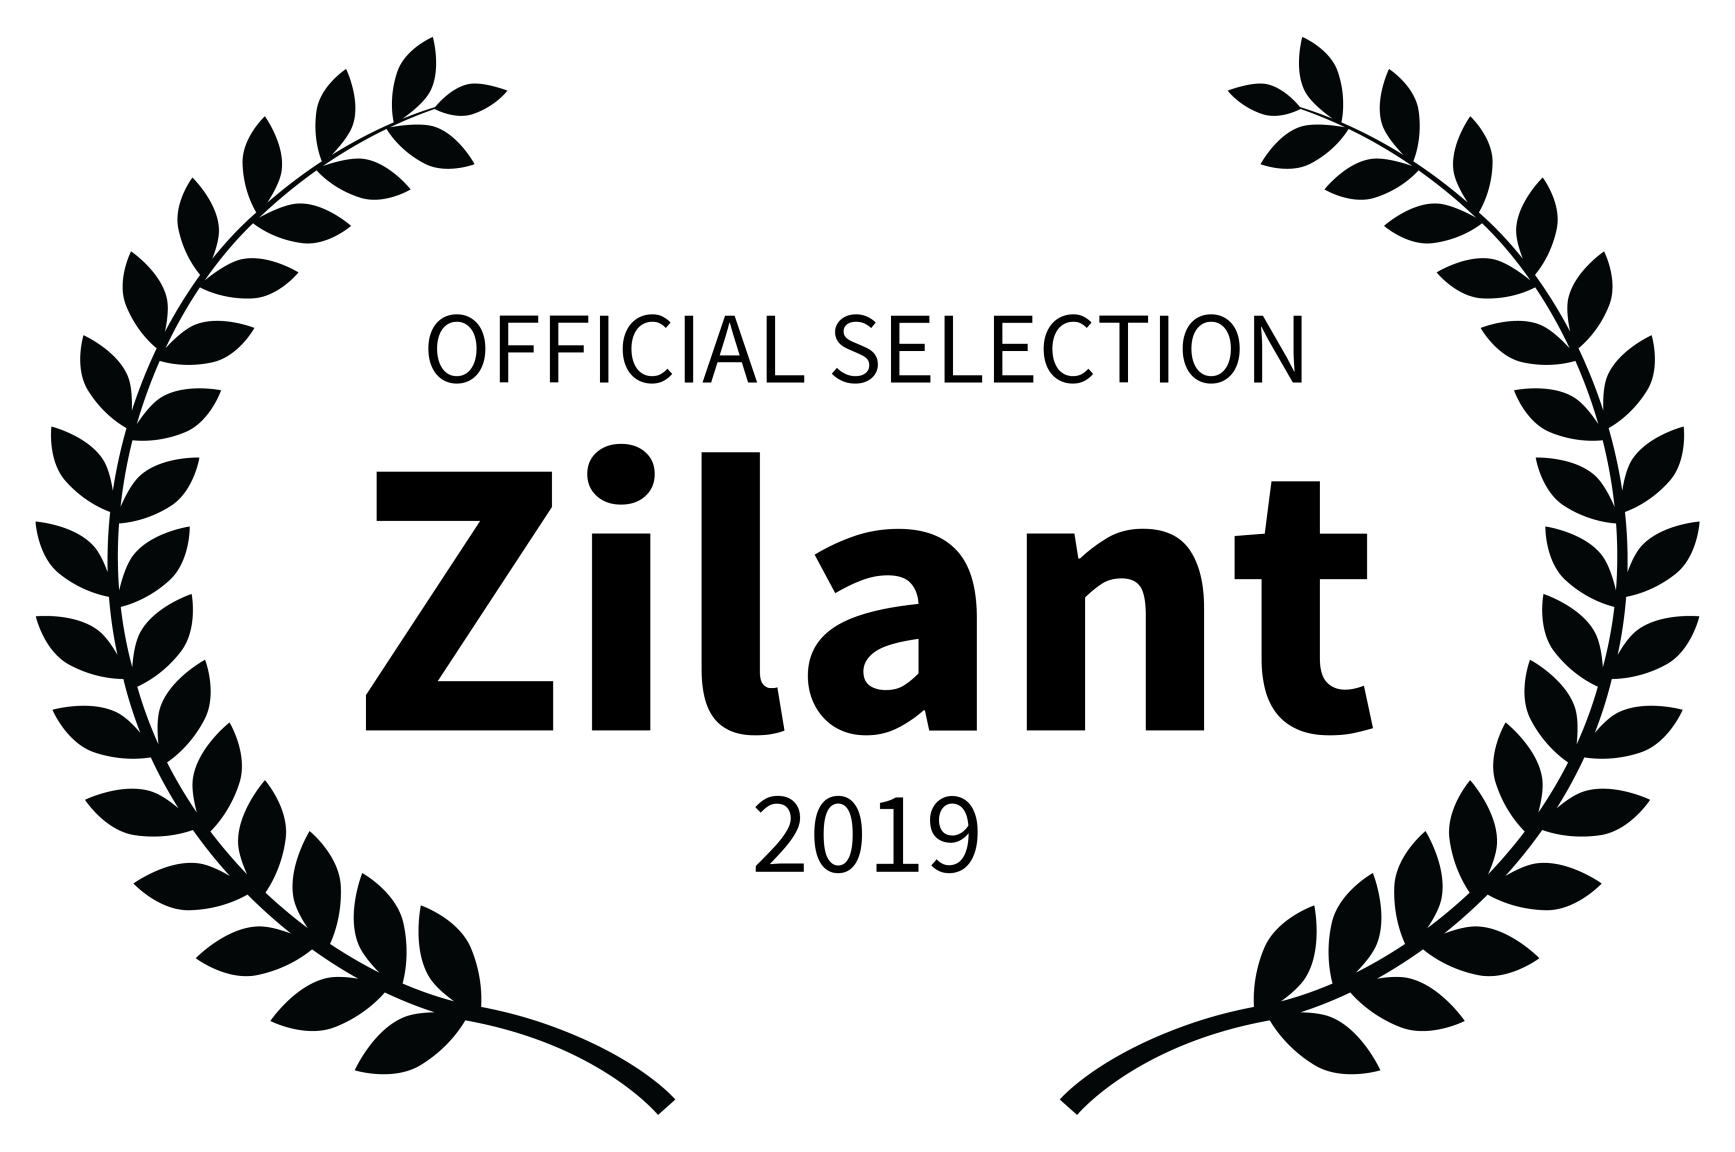 OFFICIAL SELECTION - Zilant - 2019